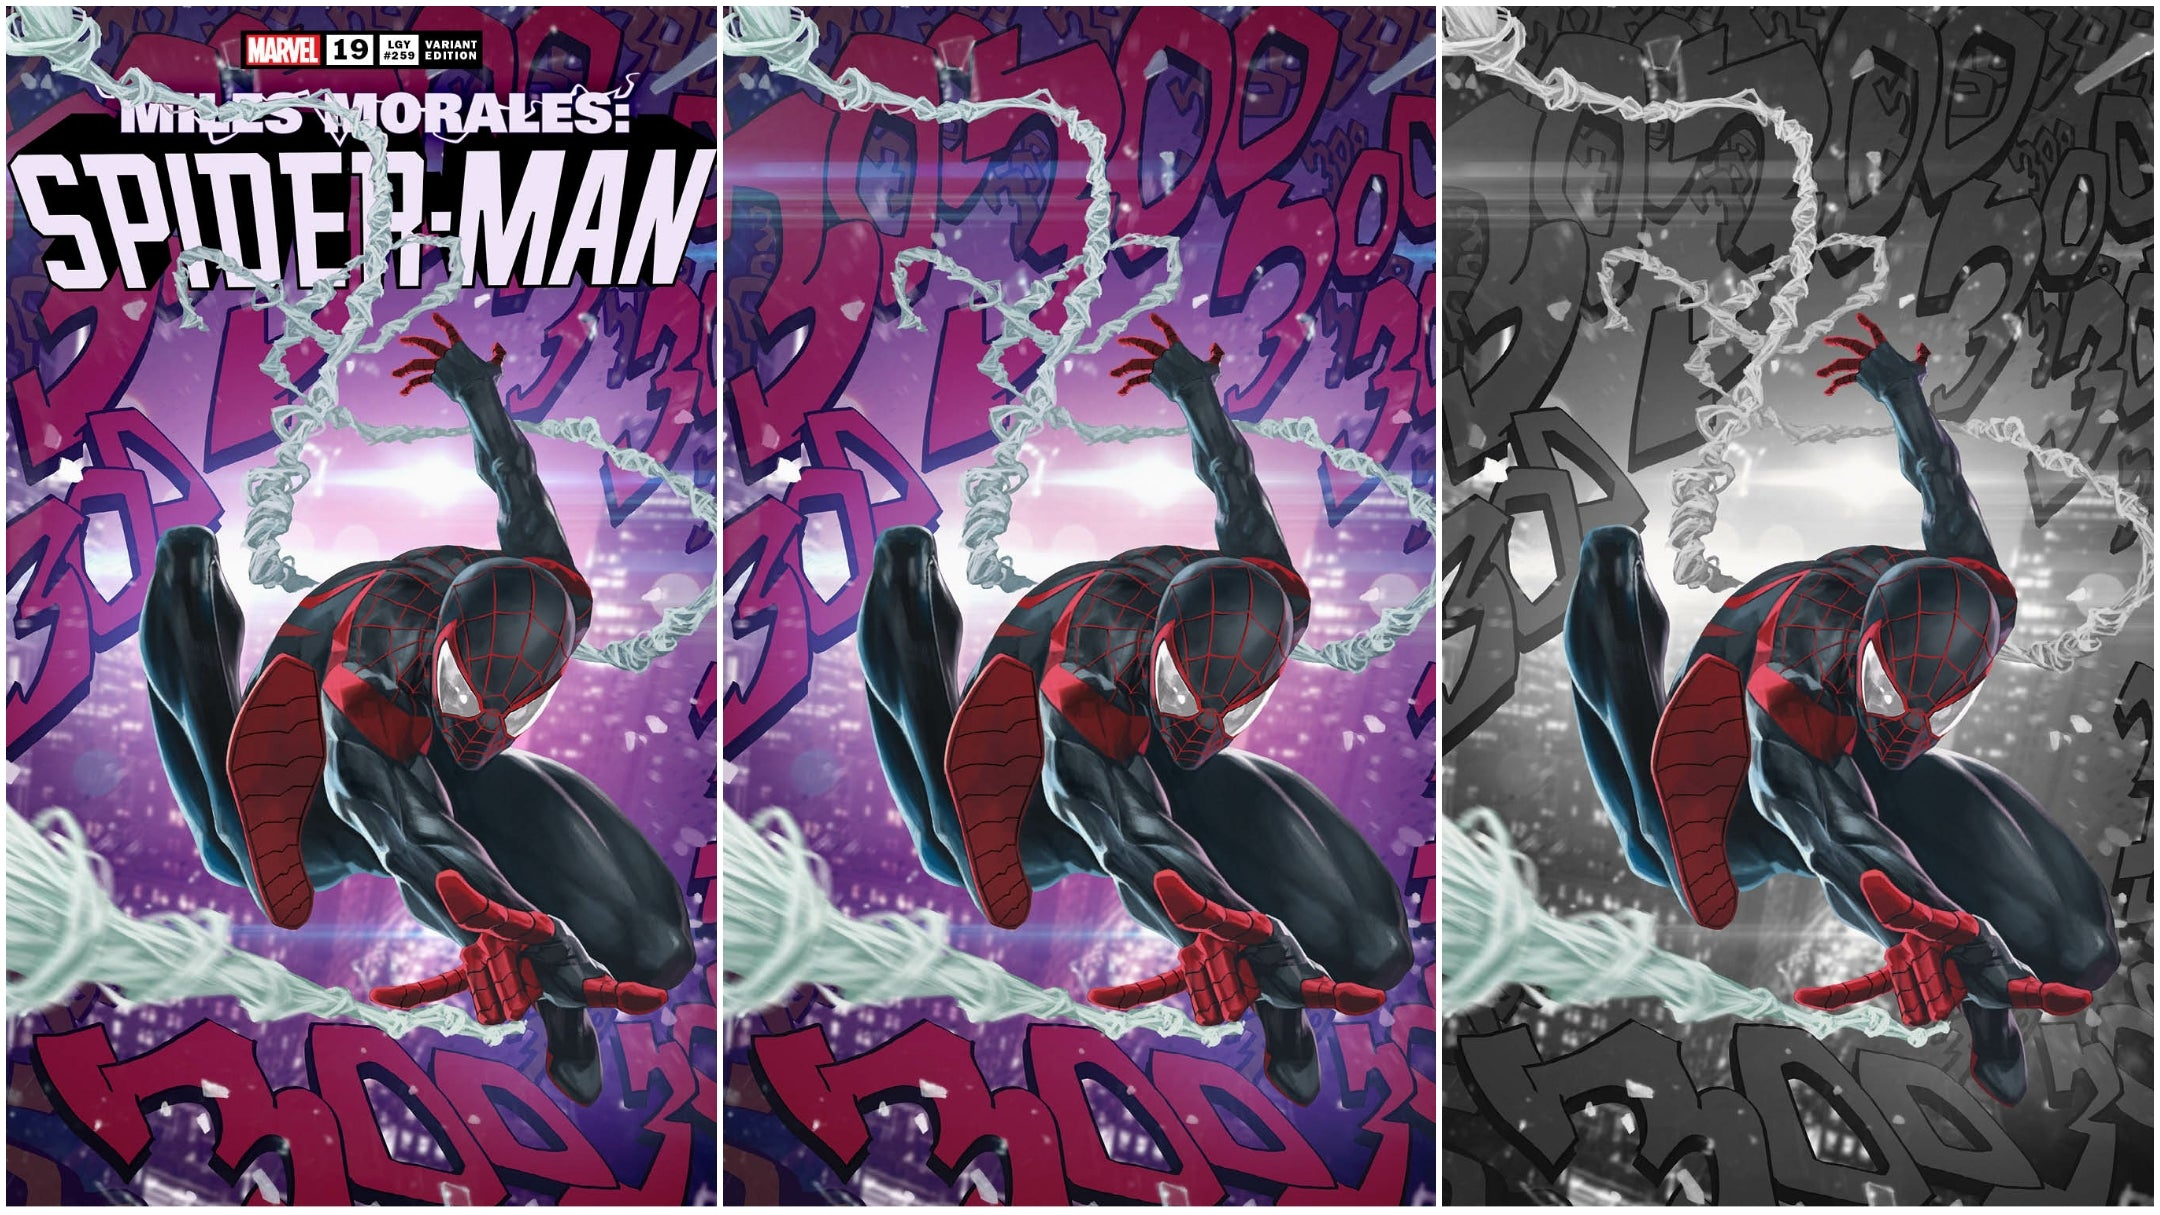 10/07/2020 MILES MORALES SPIDER-MAN #19 SSCO SKAN SRISUWAN ASM #300 HOMAGE TRADE DRESS, VIRGIN, COLOR SPLASH VIRGIN VARIANT SET OF 3